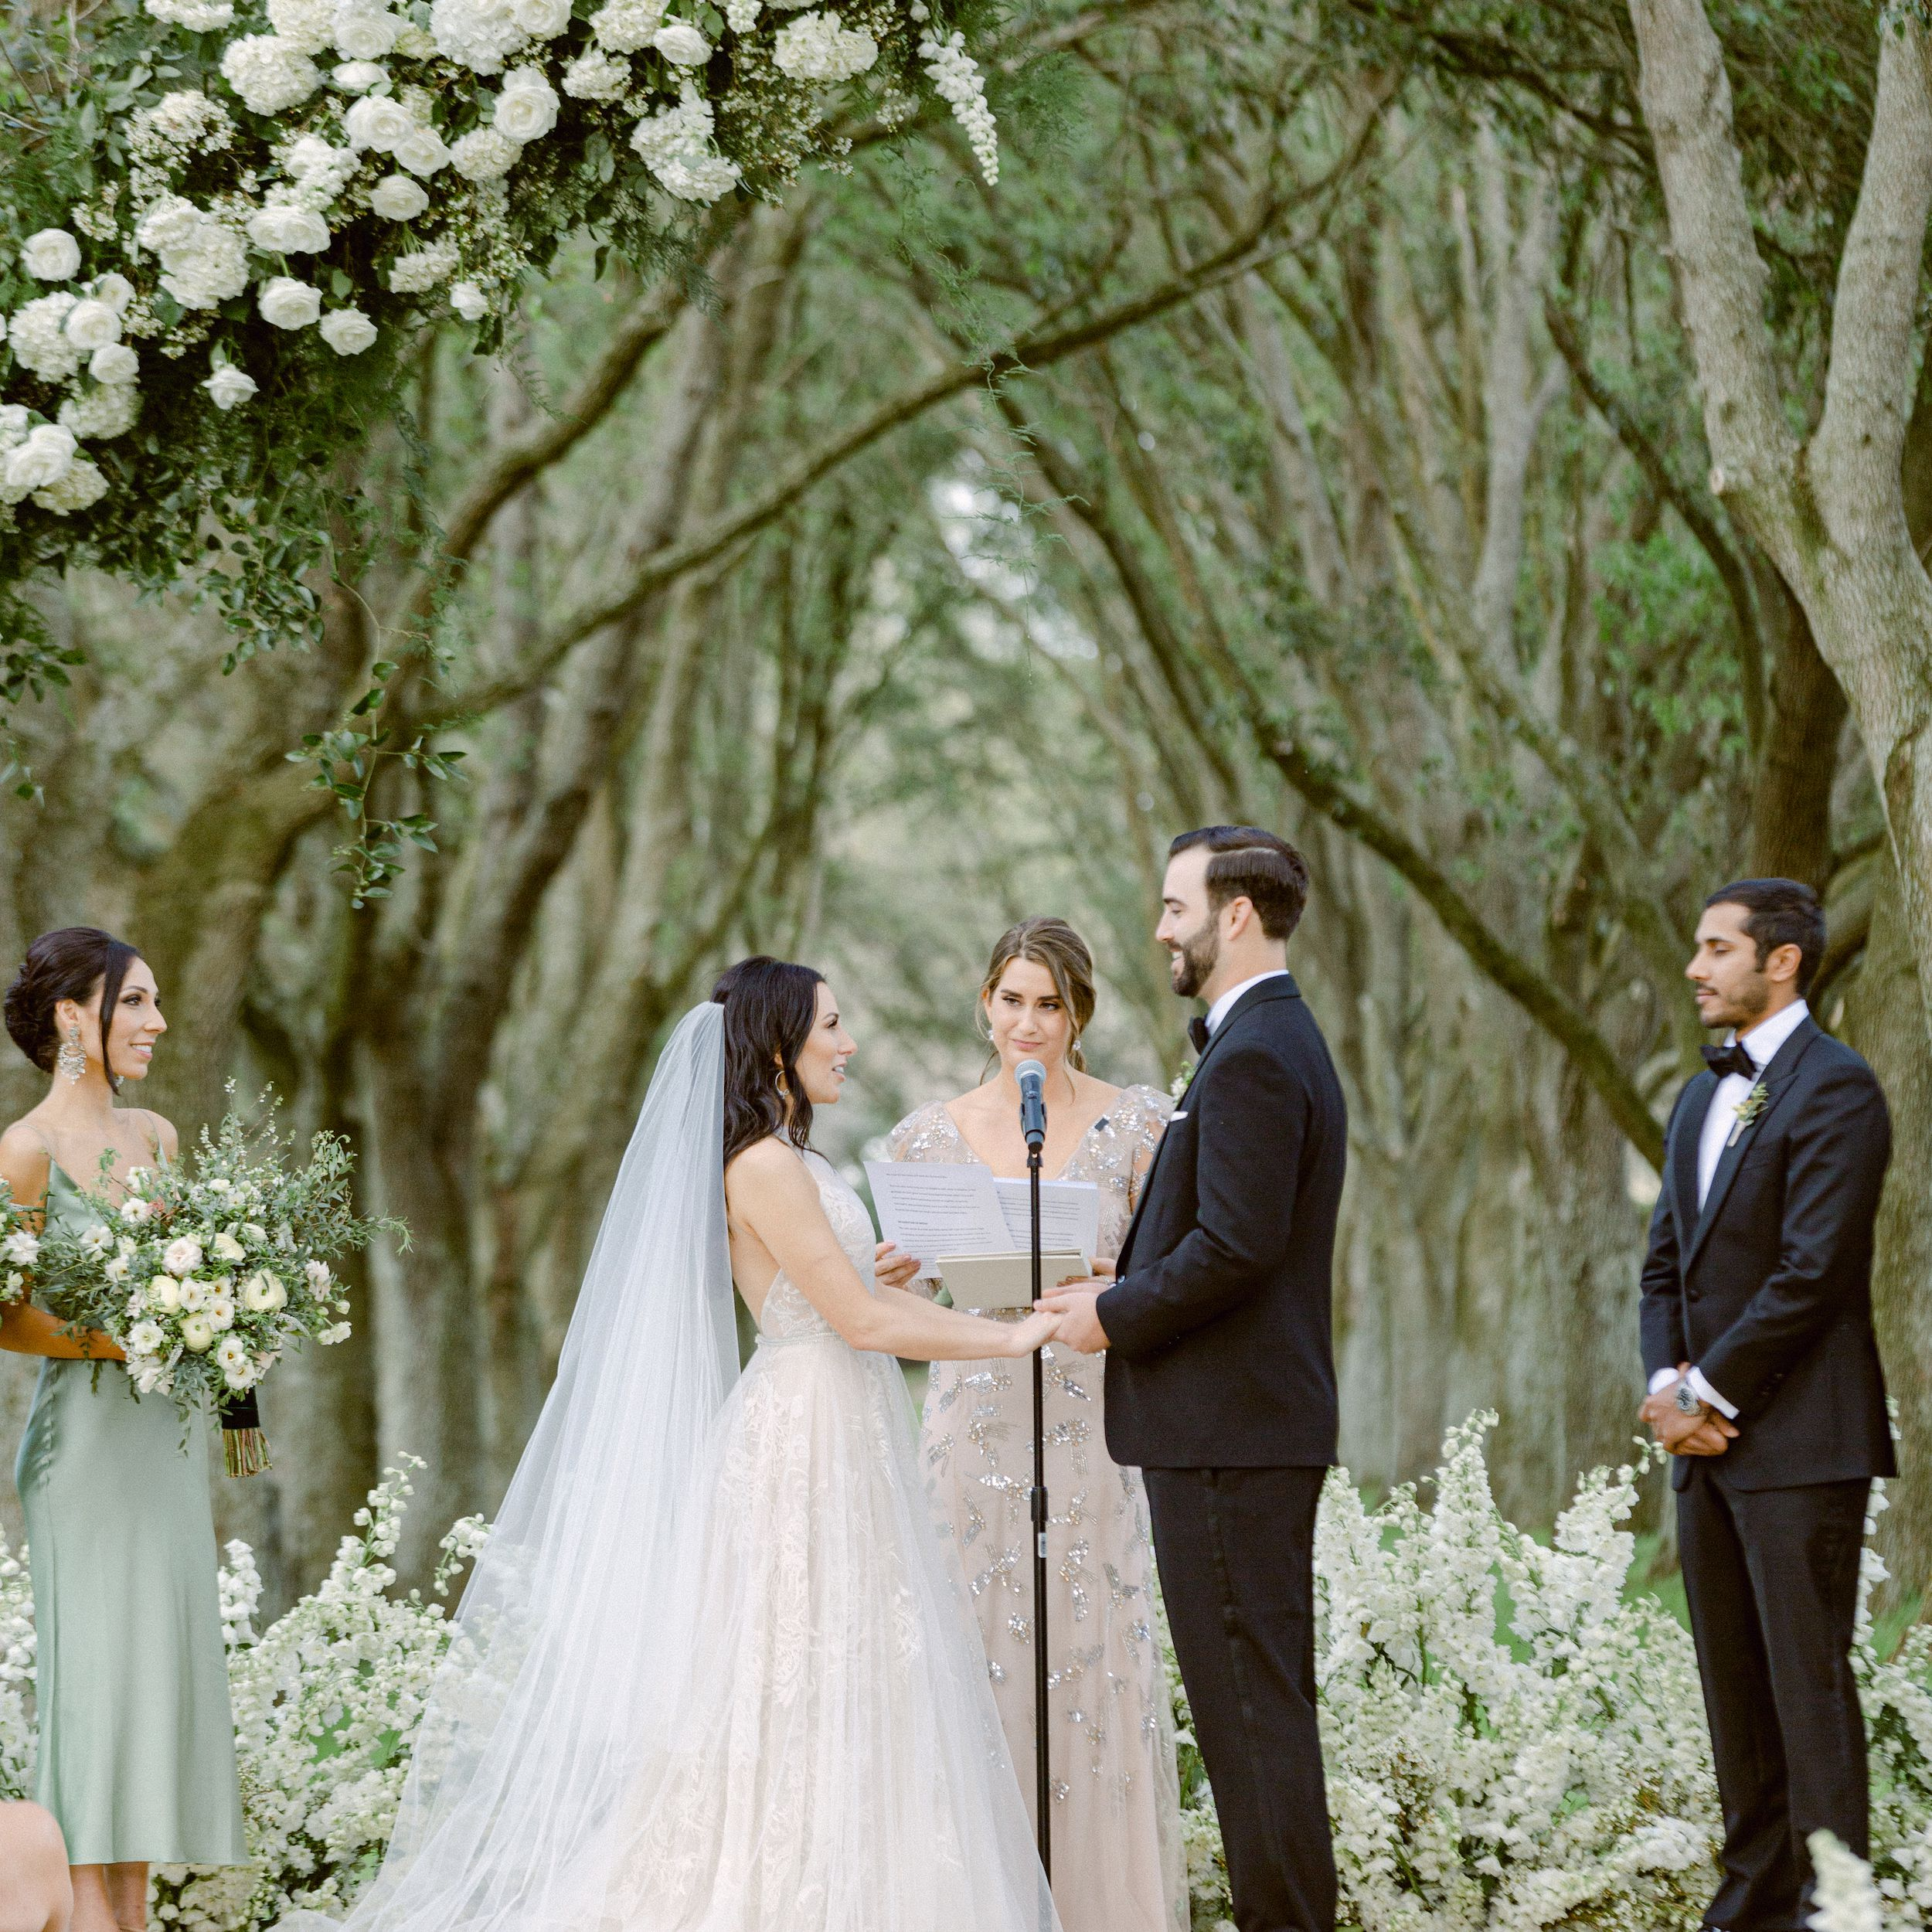 How to Officiate a Wedding Ceremony